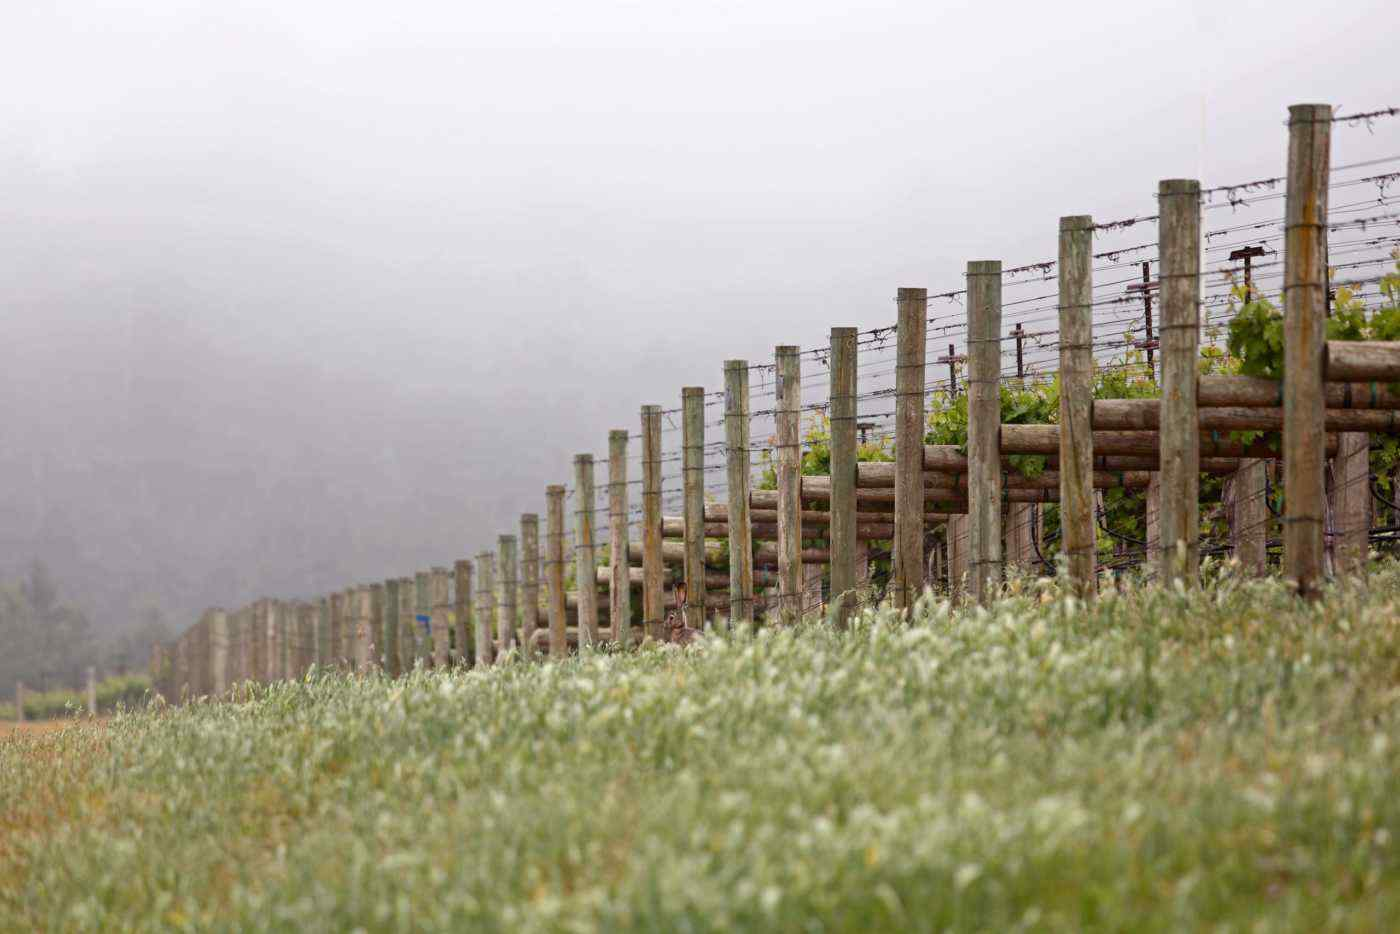 Foggy morning end of rows